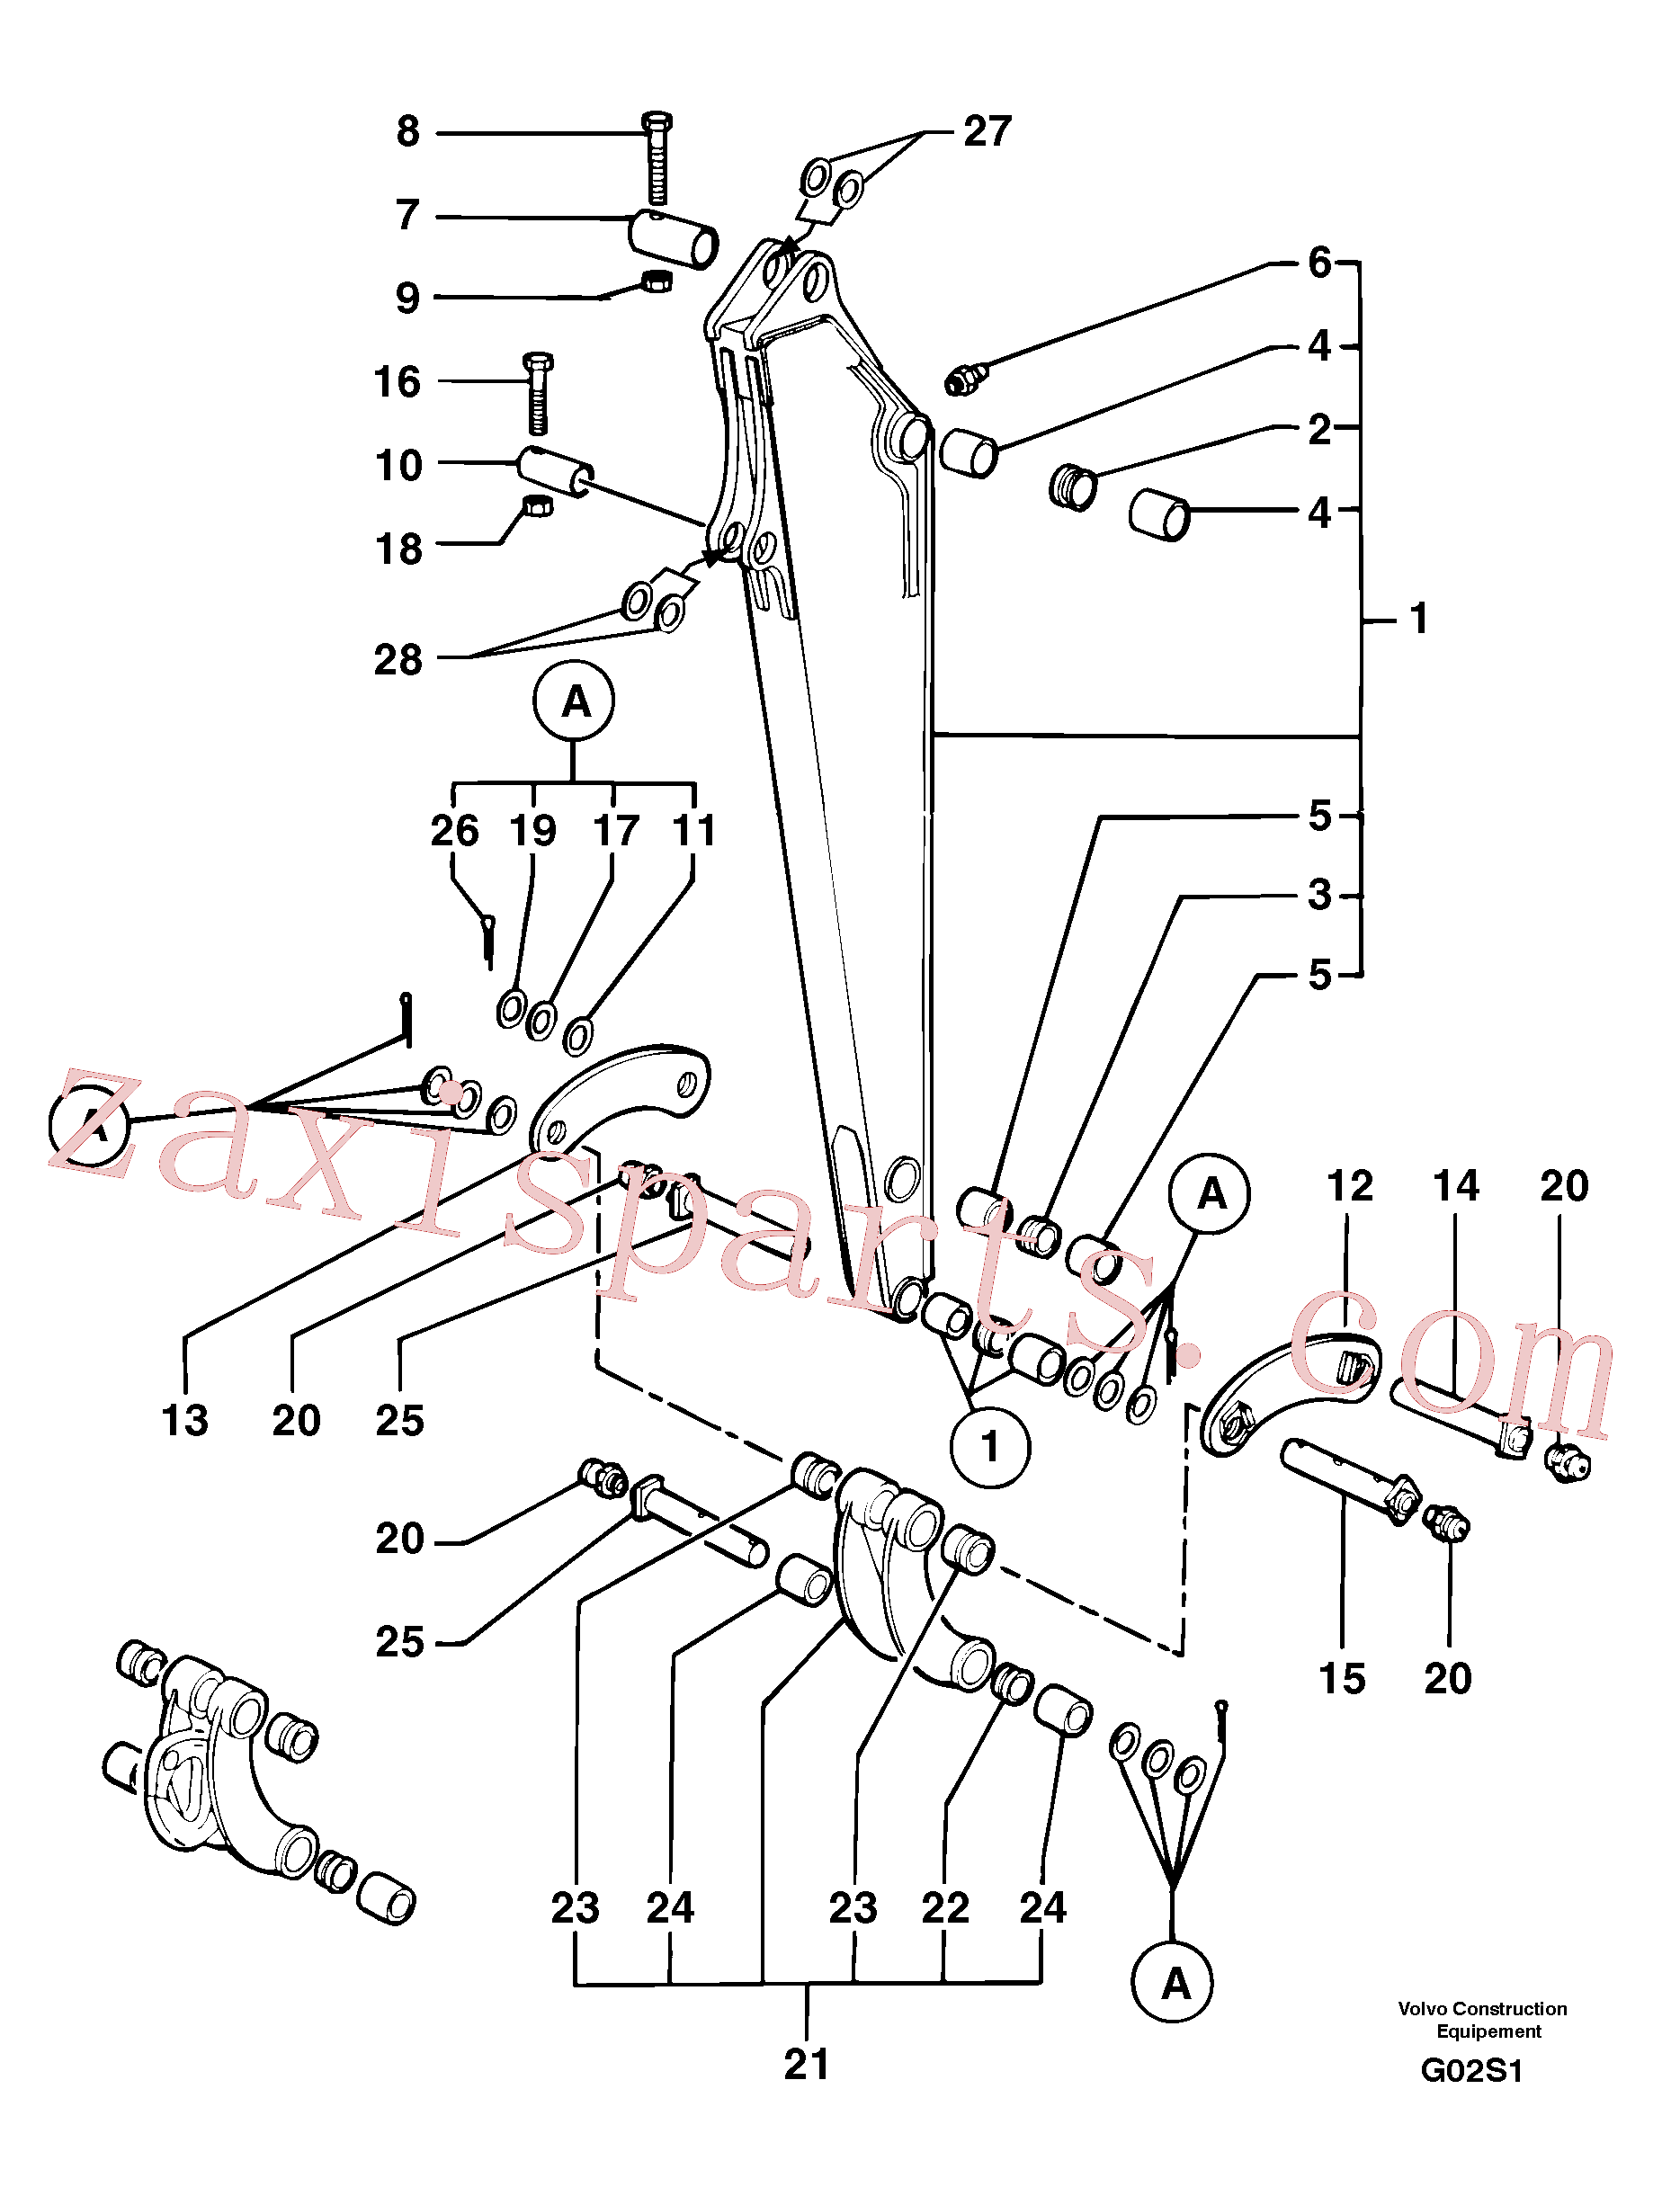 PJ5460189 for Volvo Dipper arm(G02S1 assembly)